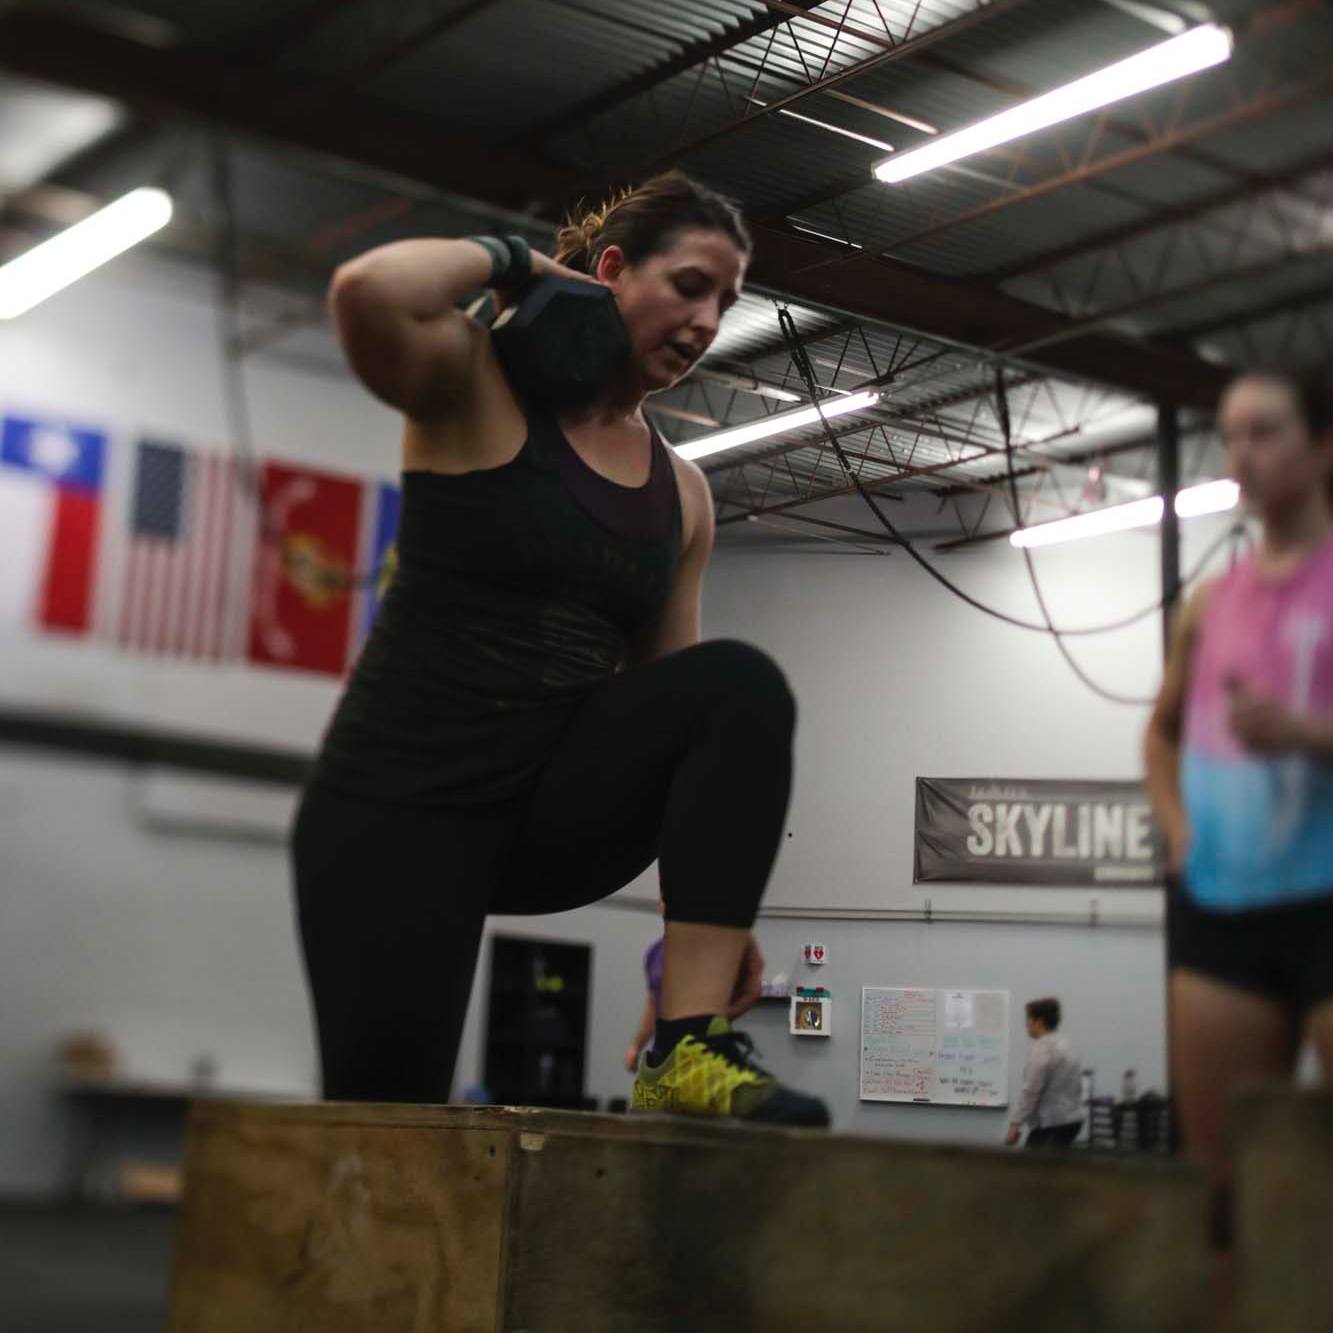 Ciji a recent transplant from Los Angeles performing weight step-ups during 19.3 CrossFit Open.